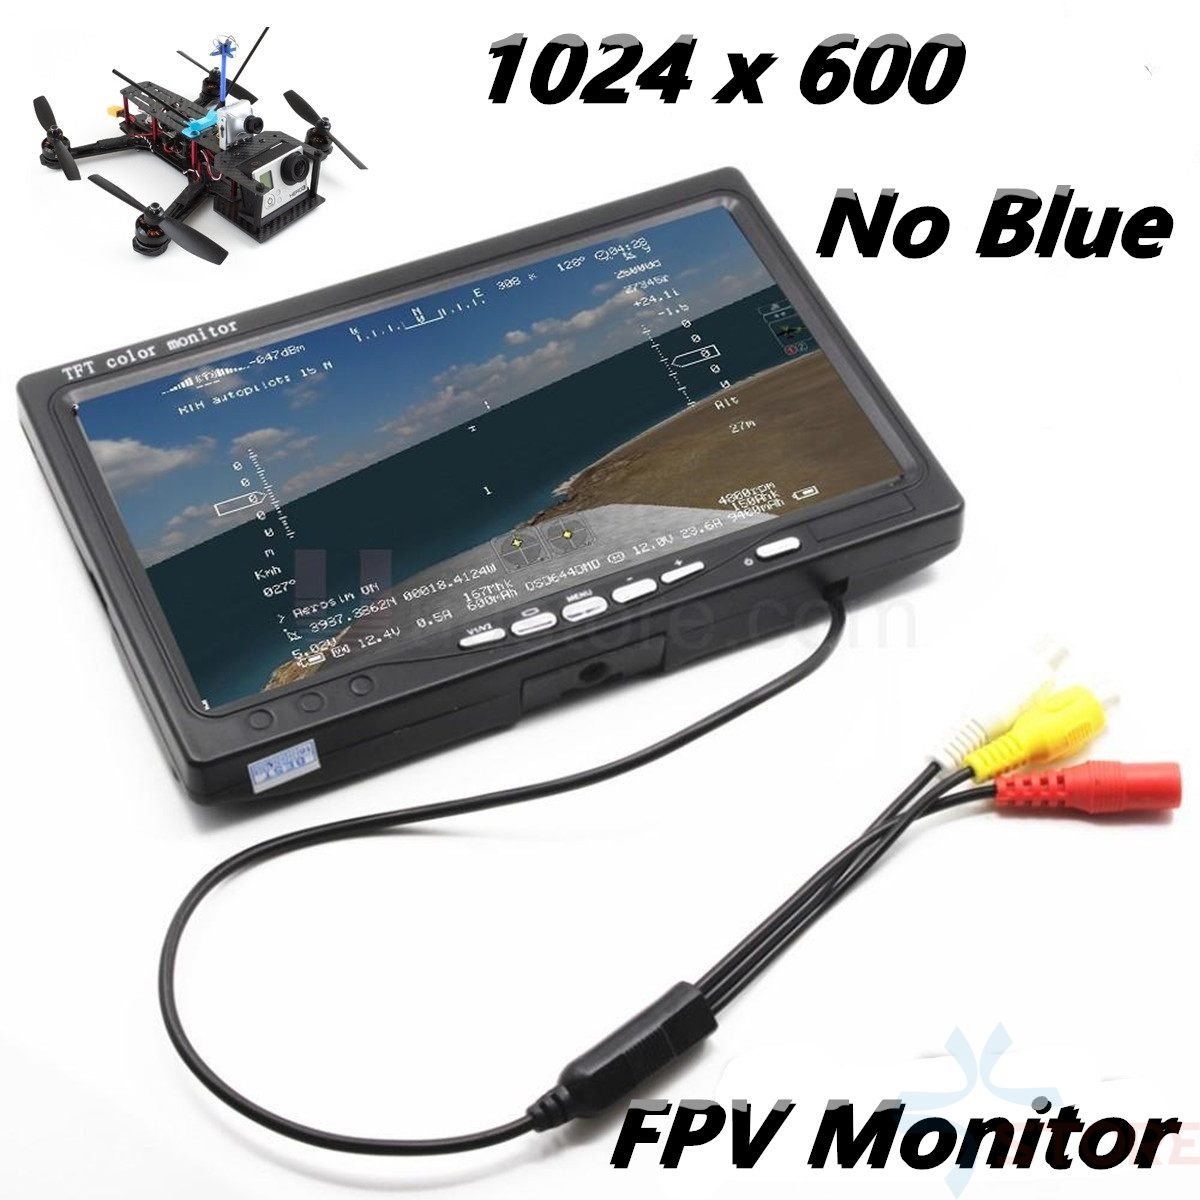 7 inch LCD TFT FPV Monitor 1024x600 w/T plug Screen No blue FPV Monitor Photography for Ground Station Phantom RC Model QAV250 8 4inch 8 4 non touch industrial control lcd monitor vga interface white open frame metal shell tft type 4 3 800 600